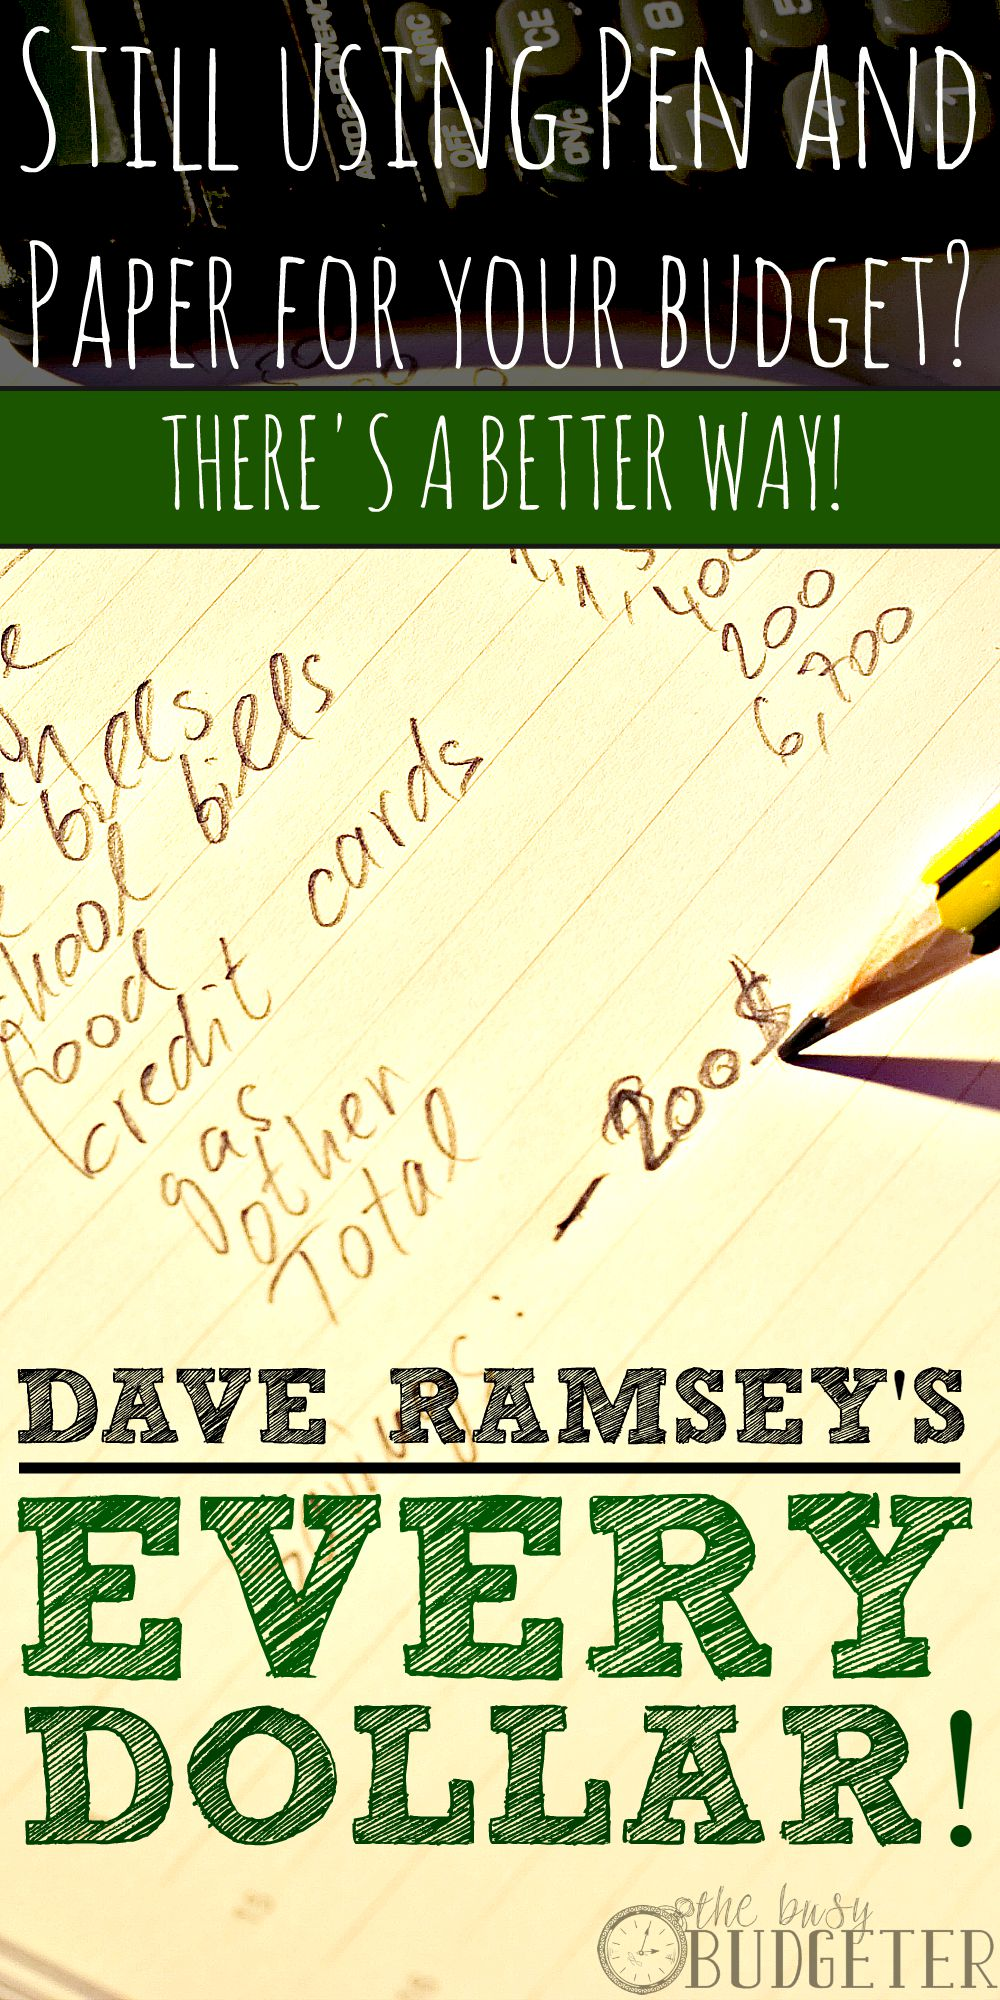 Dave Ramsey's Every Dollar Review